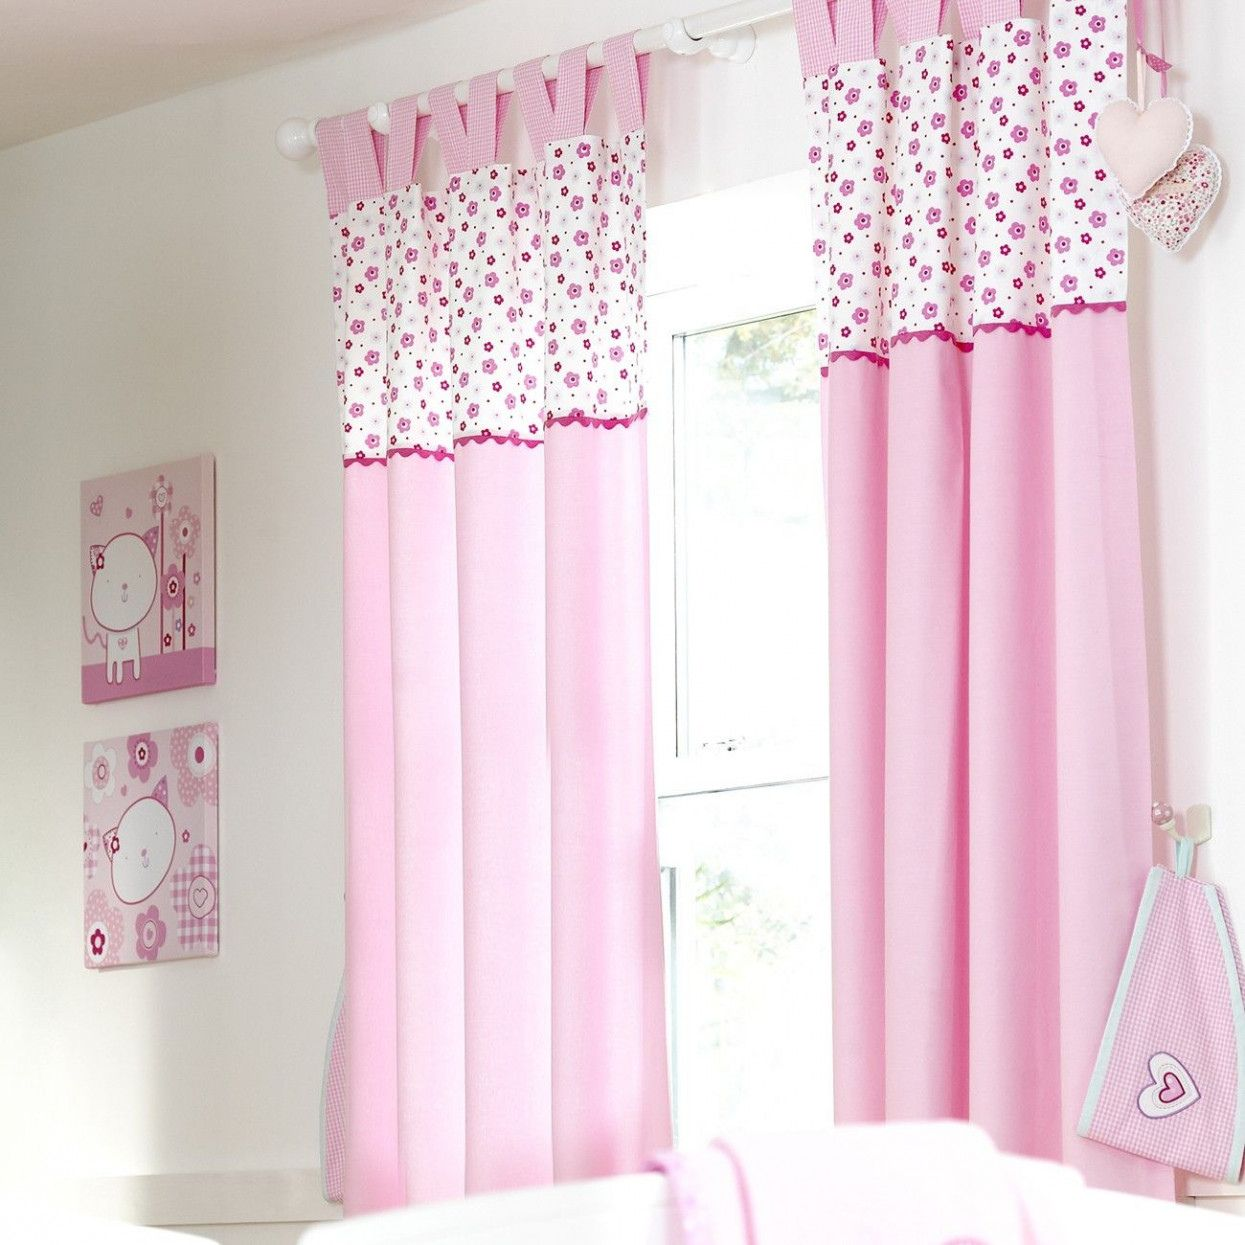 77 Baby Room Curtain Ideas Cool Rustic Furniture Check More At